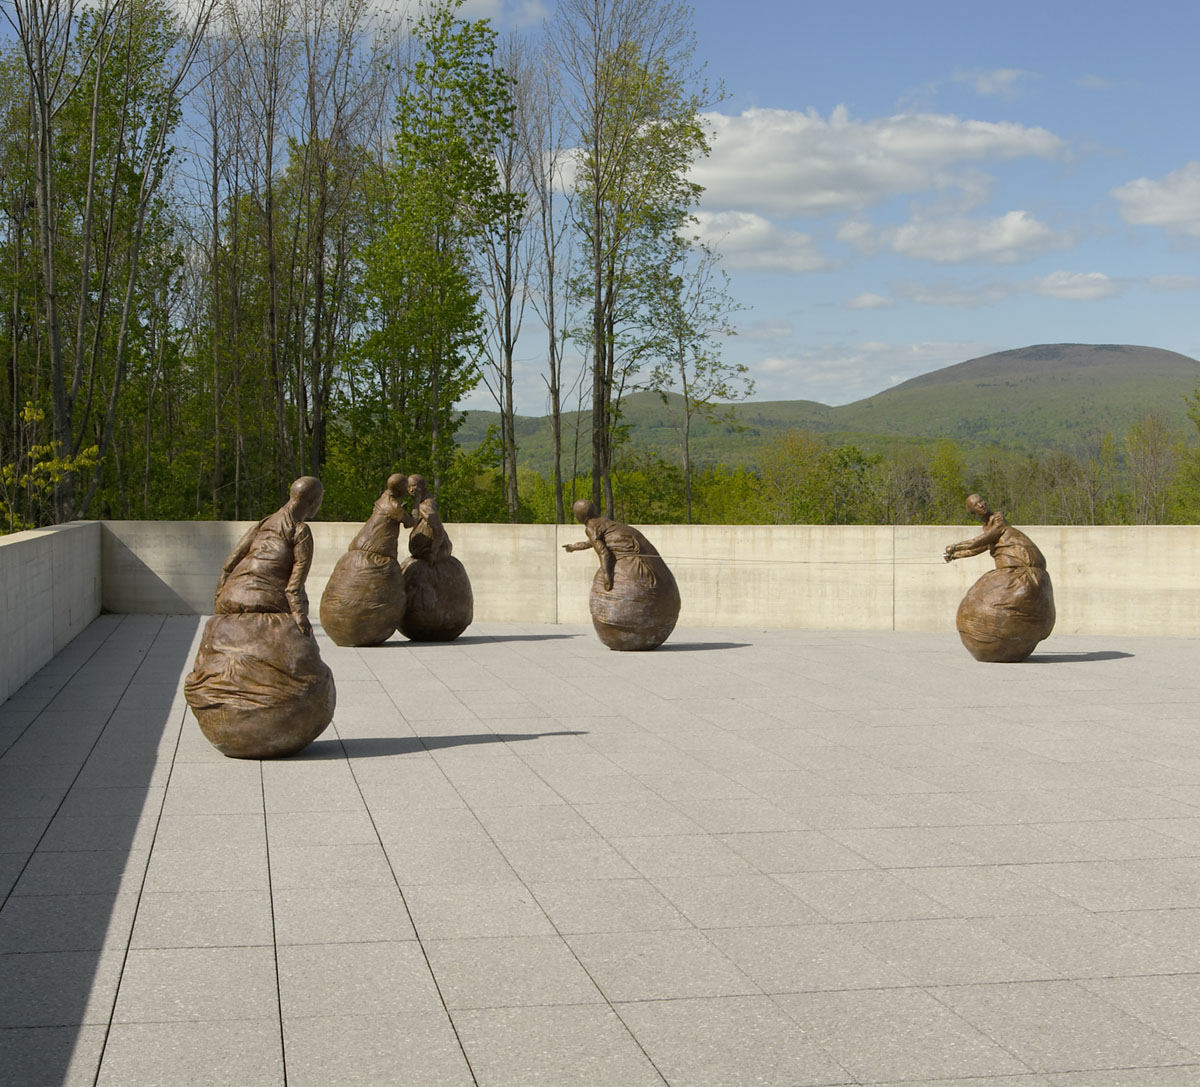 © Sterling and Francine Clark Art Institute, Williamstown, Massachusetts (photo by Michael Agee)